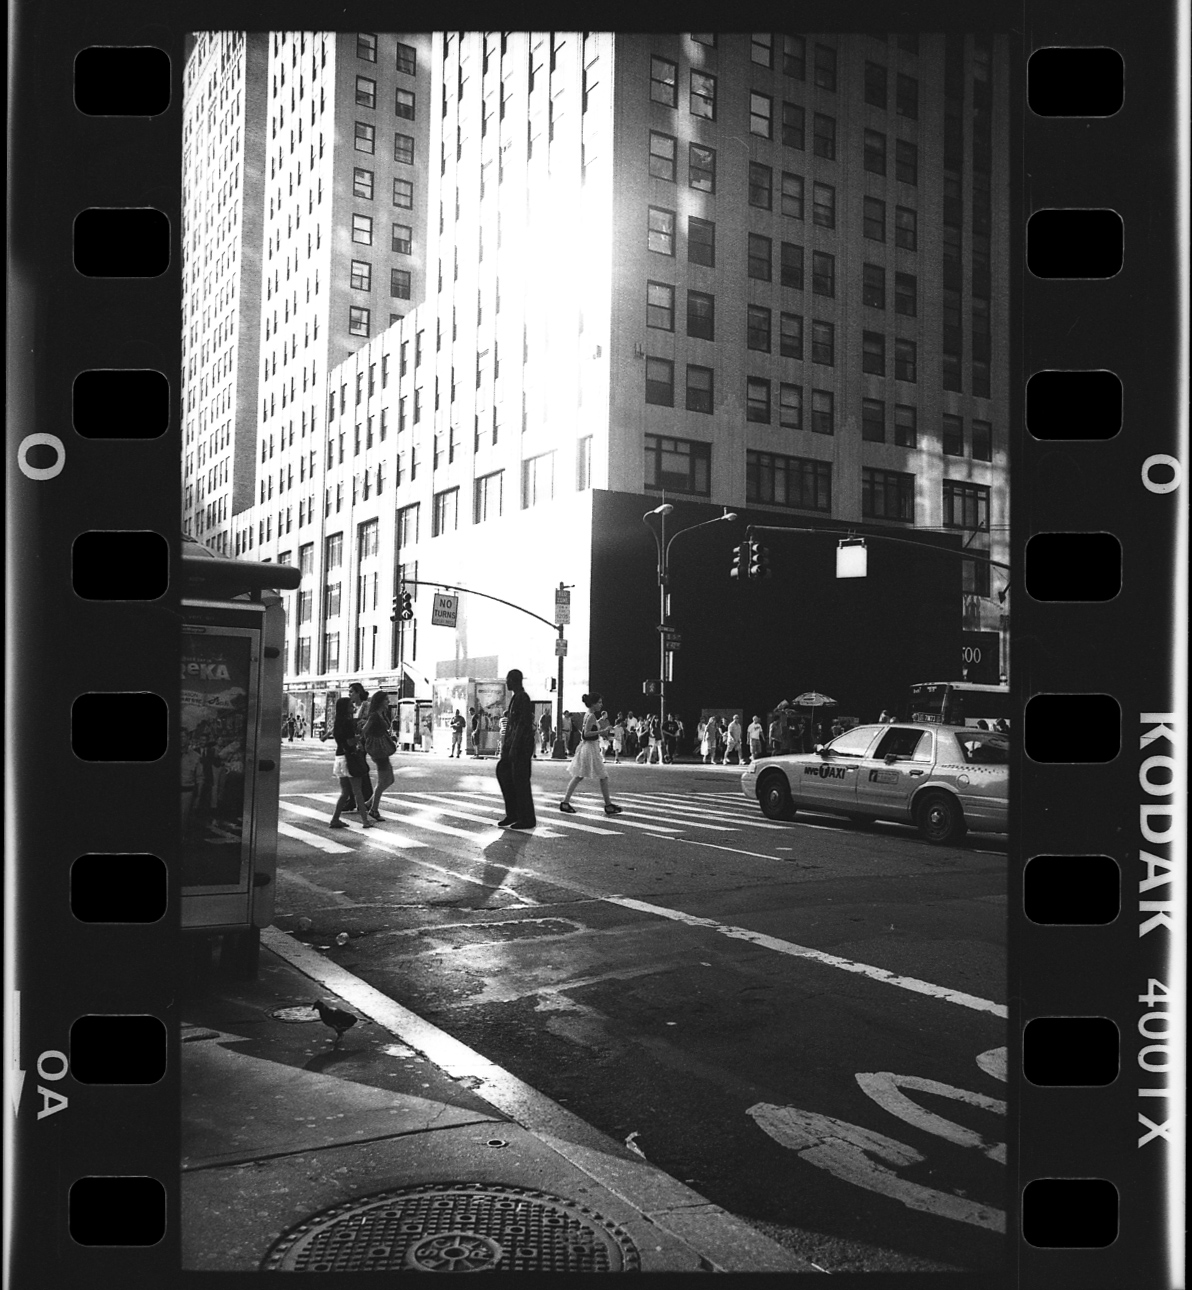 This work was recently exhibited at Kind of Gallery in Darlinghurst. The group show pays homage to 35mm film with each artist submitting the first or last frame on a rollof 35mm film. My work was shot late one afternoon in 2008 roaming the streets of NYC with my trusty Leica.